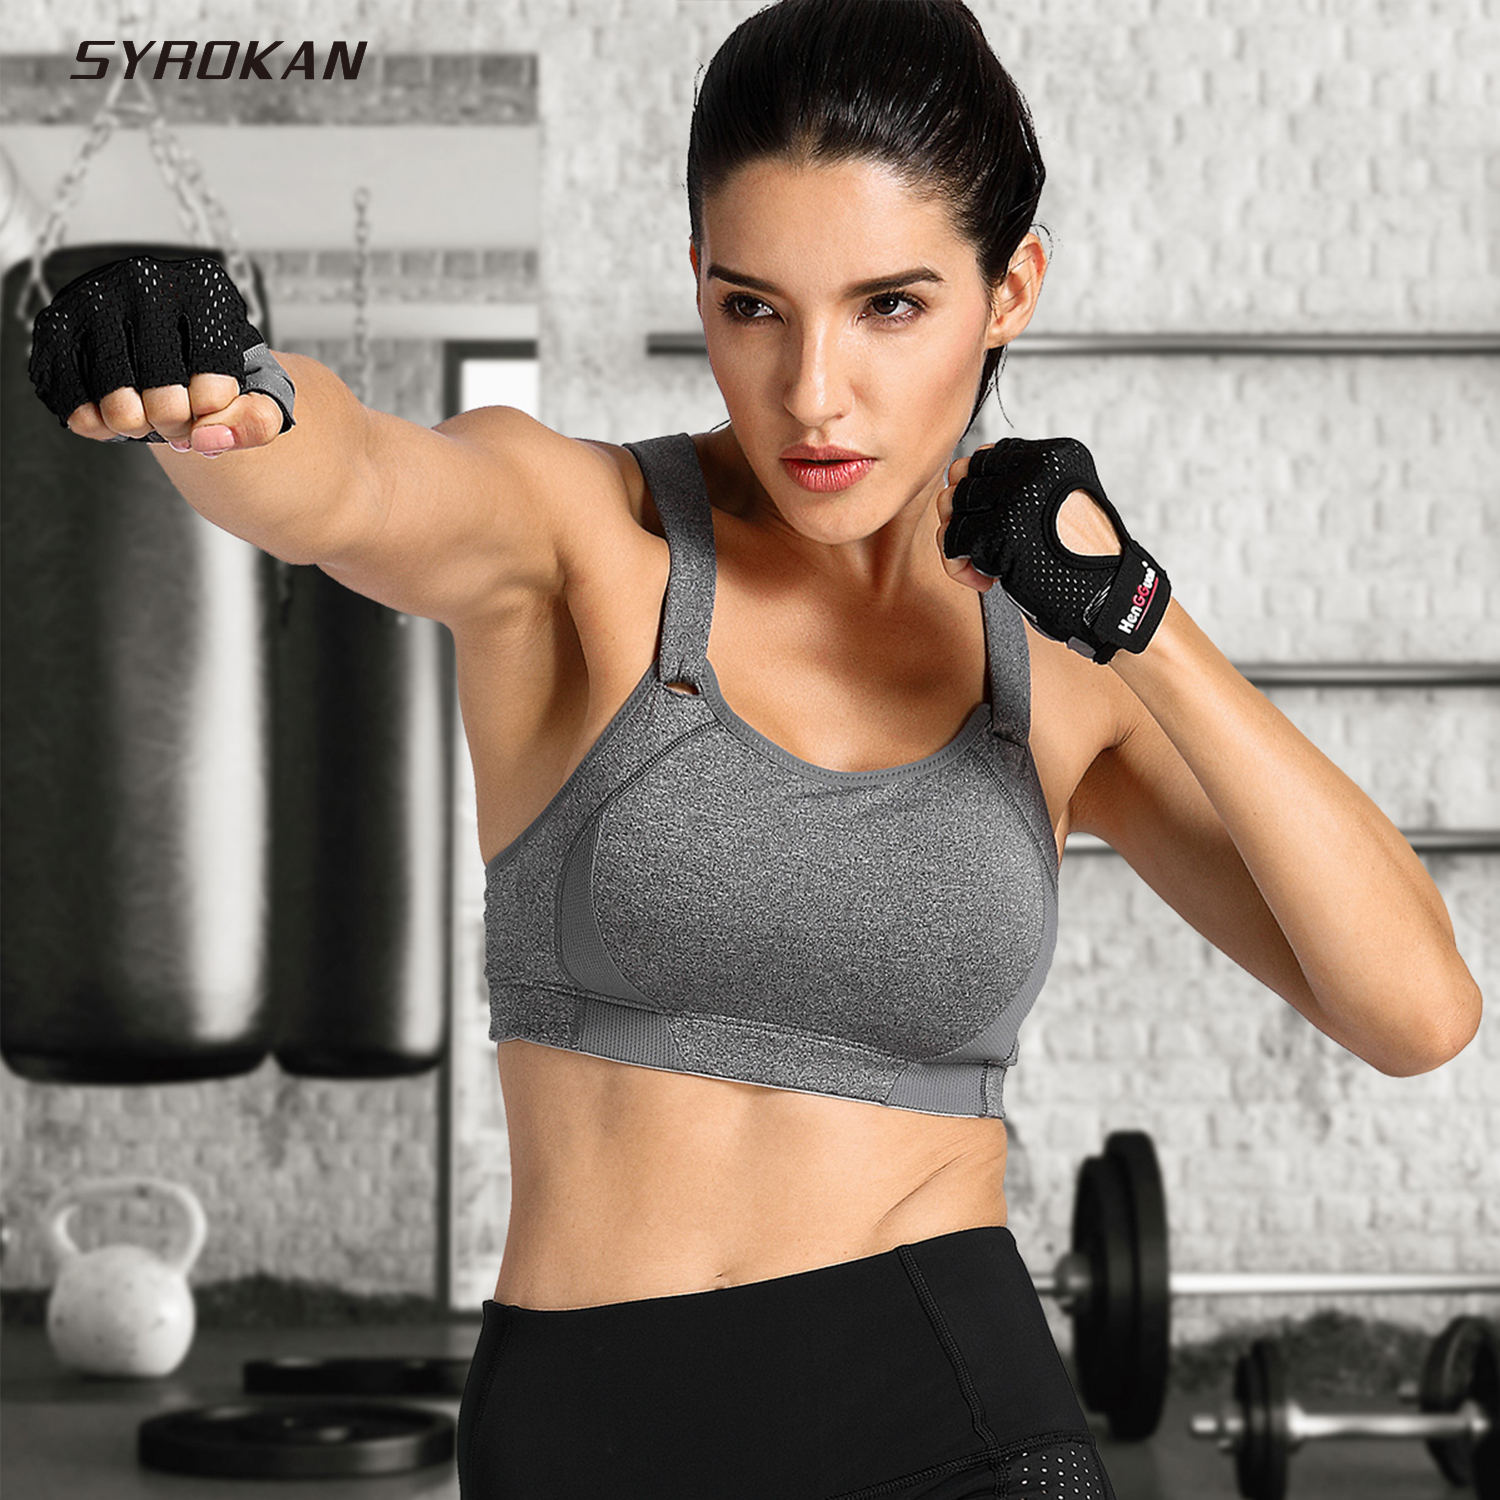 SYROKAN Women's High Impact Wire Free Full Coverage Lightly Padded Sports Bra недорго, оригинальная цена